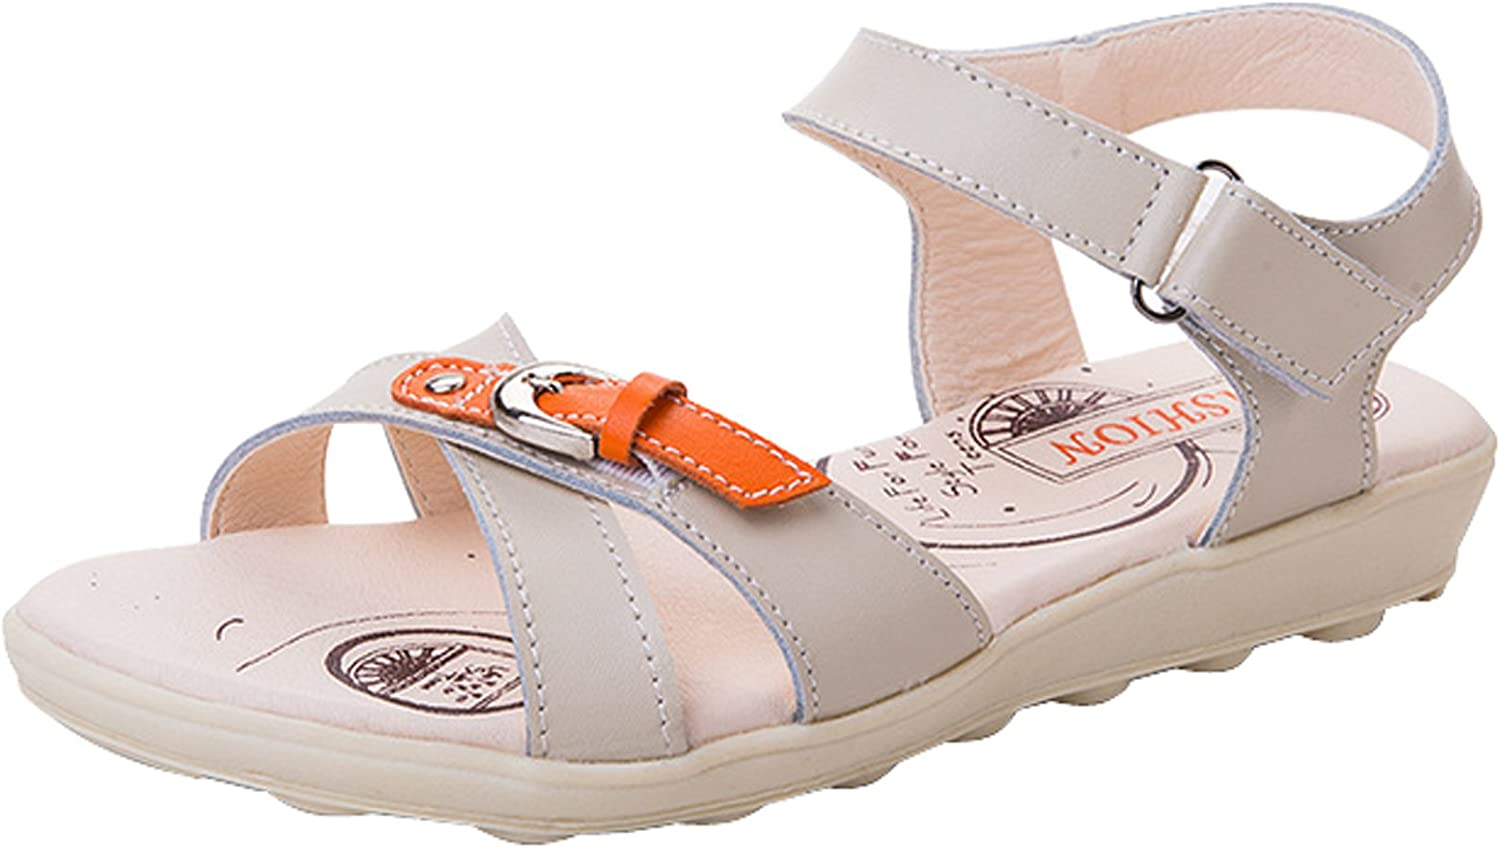 New summer leather flat sandals